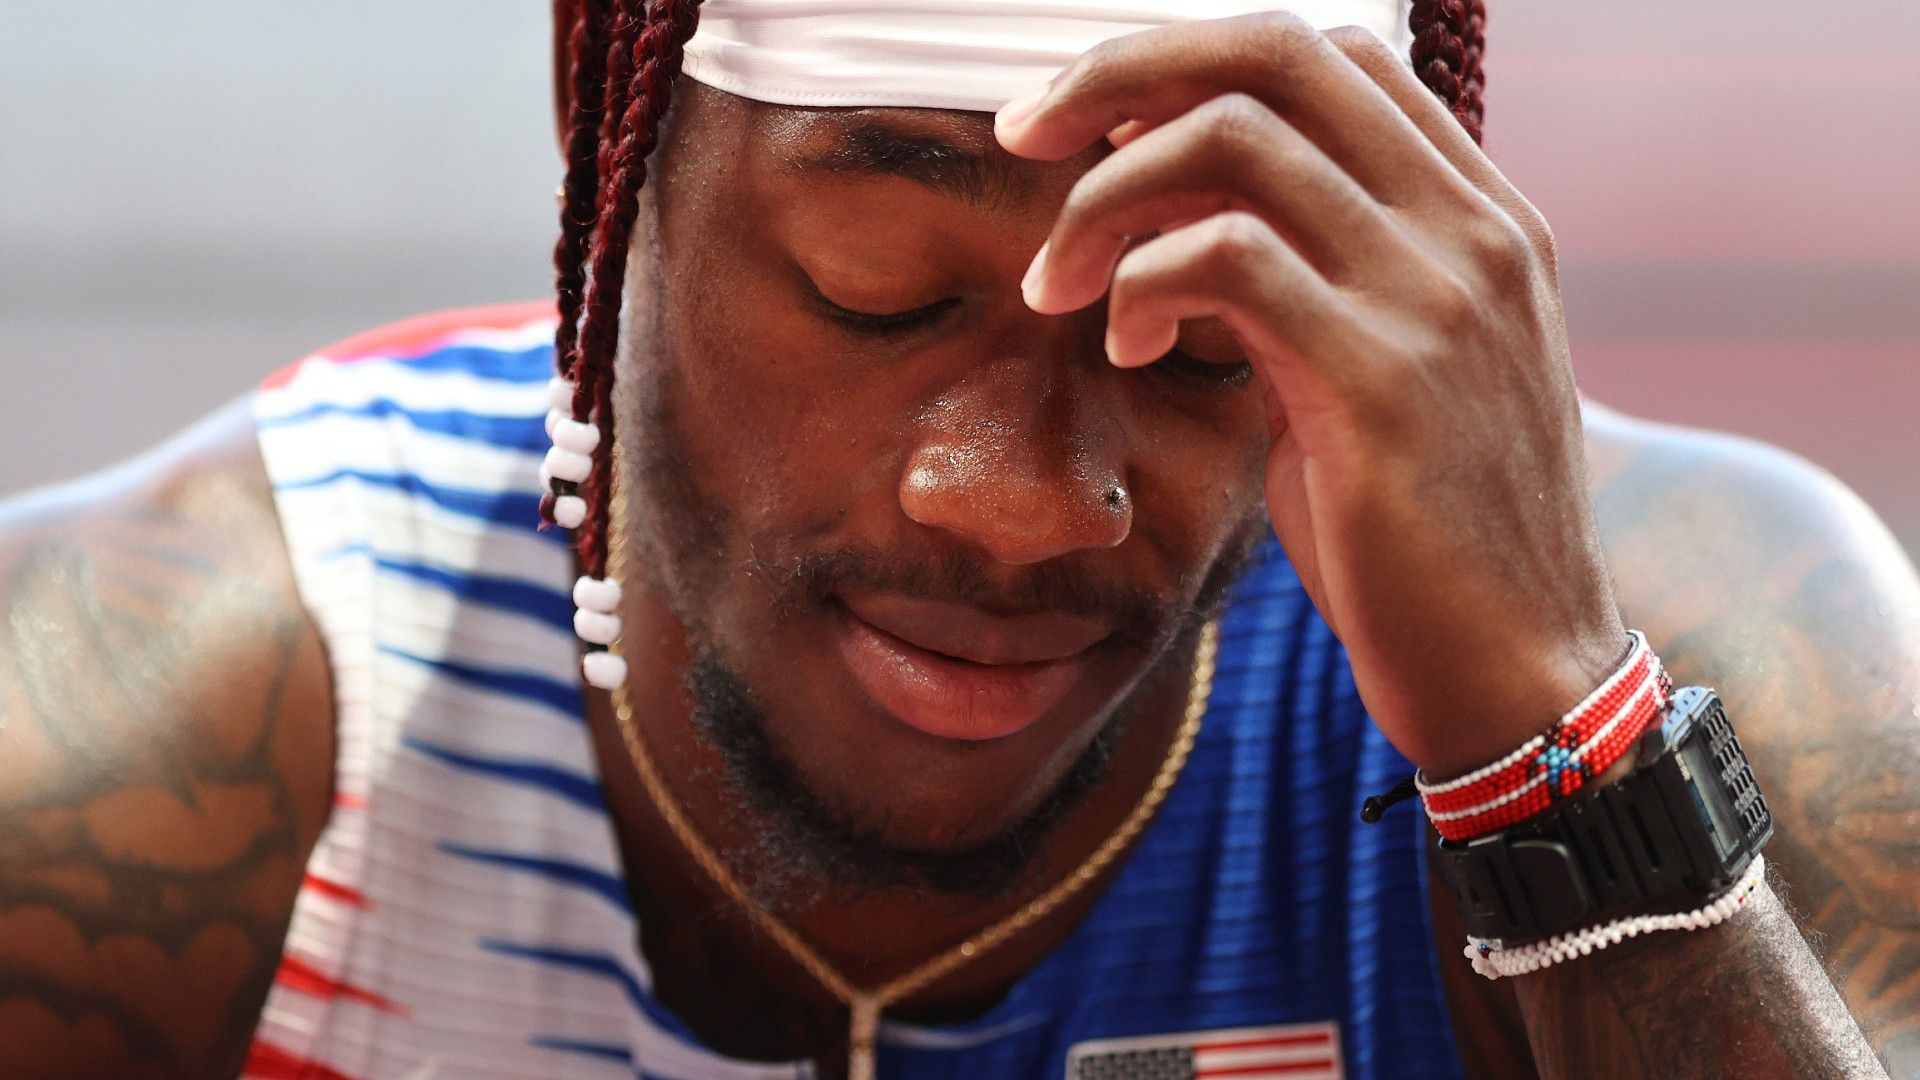 Tokyo 2021: Fresh debacle for United States track and field team